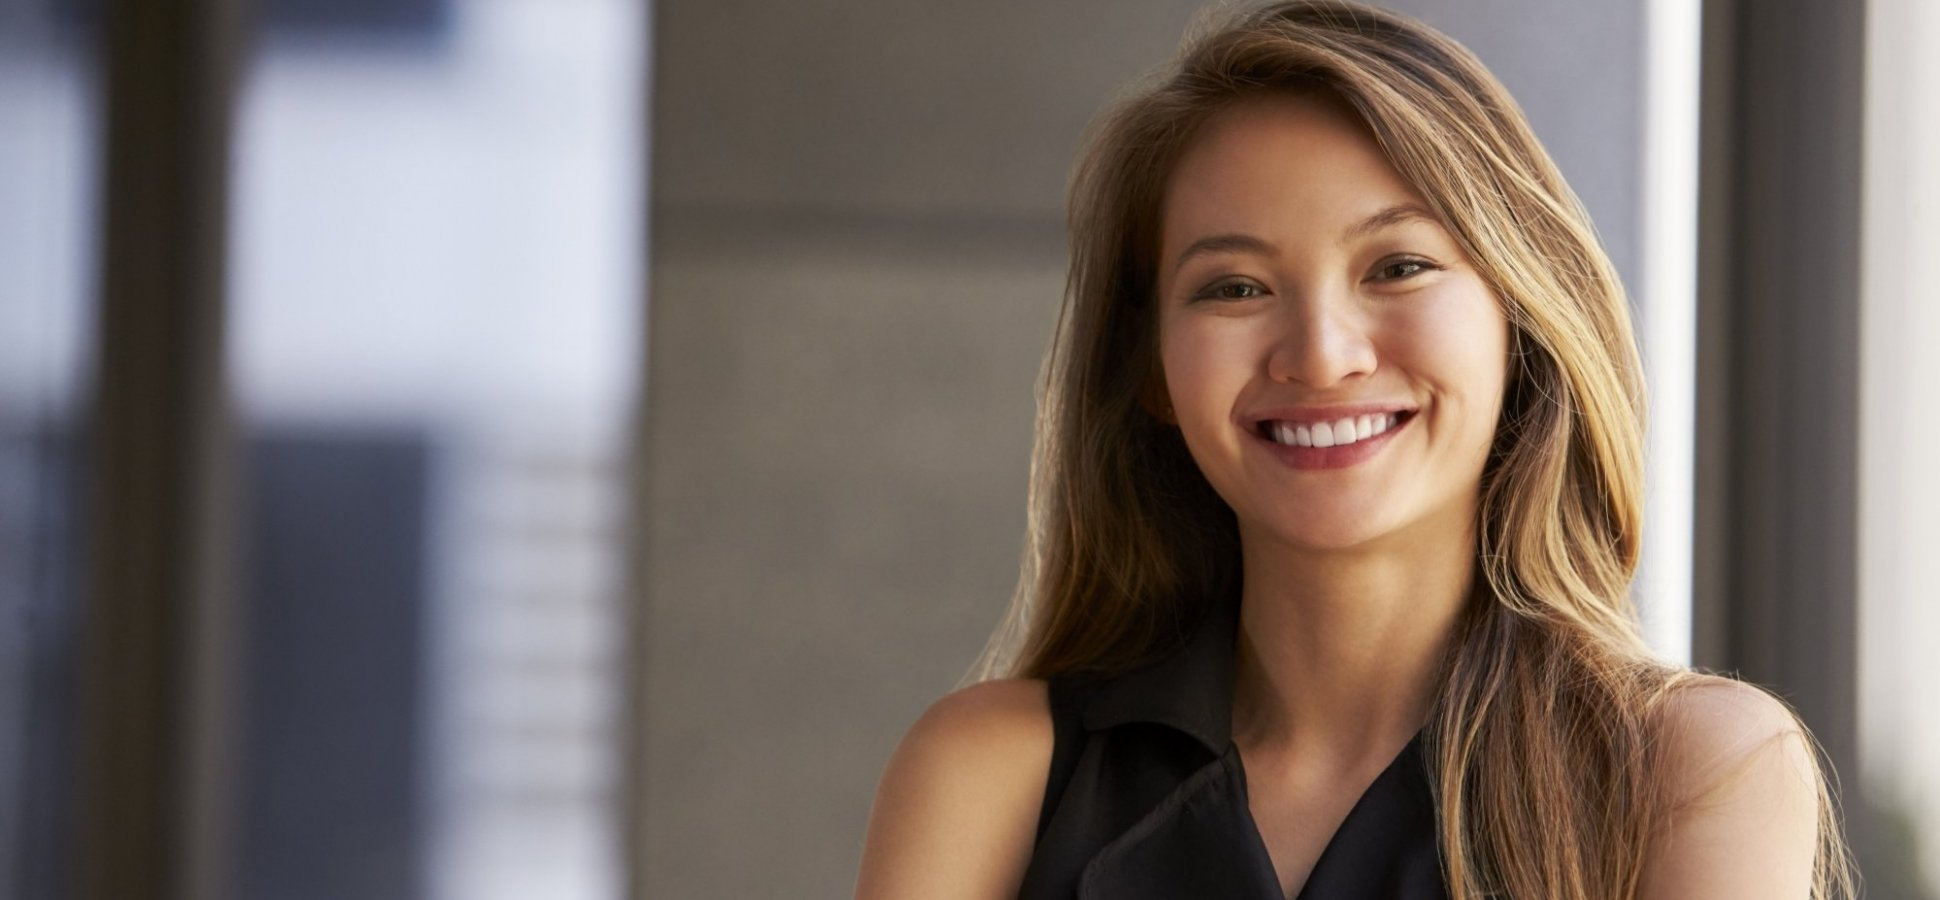 Want to Inspire Happiness? These 6 Powerfully Simple Tips Will Help You Do Just That